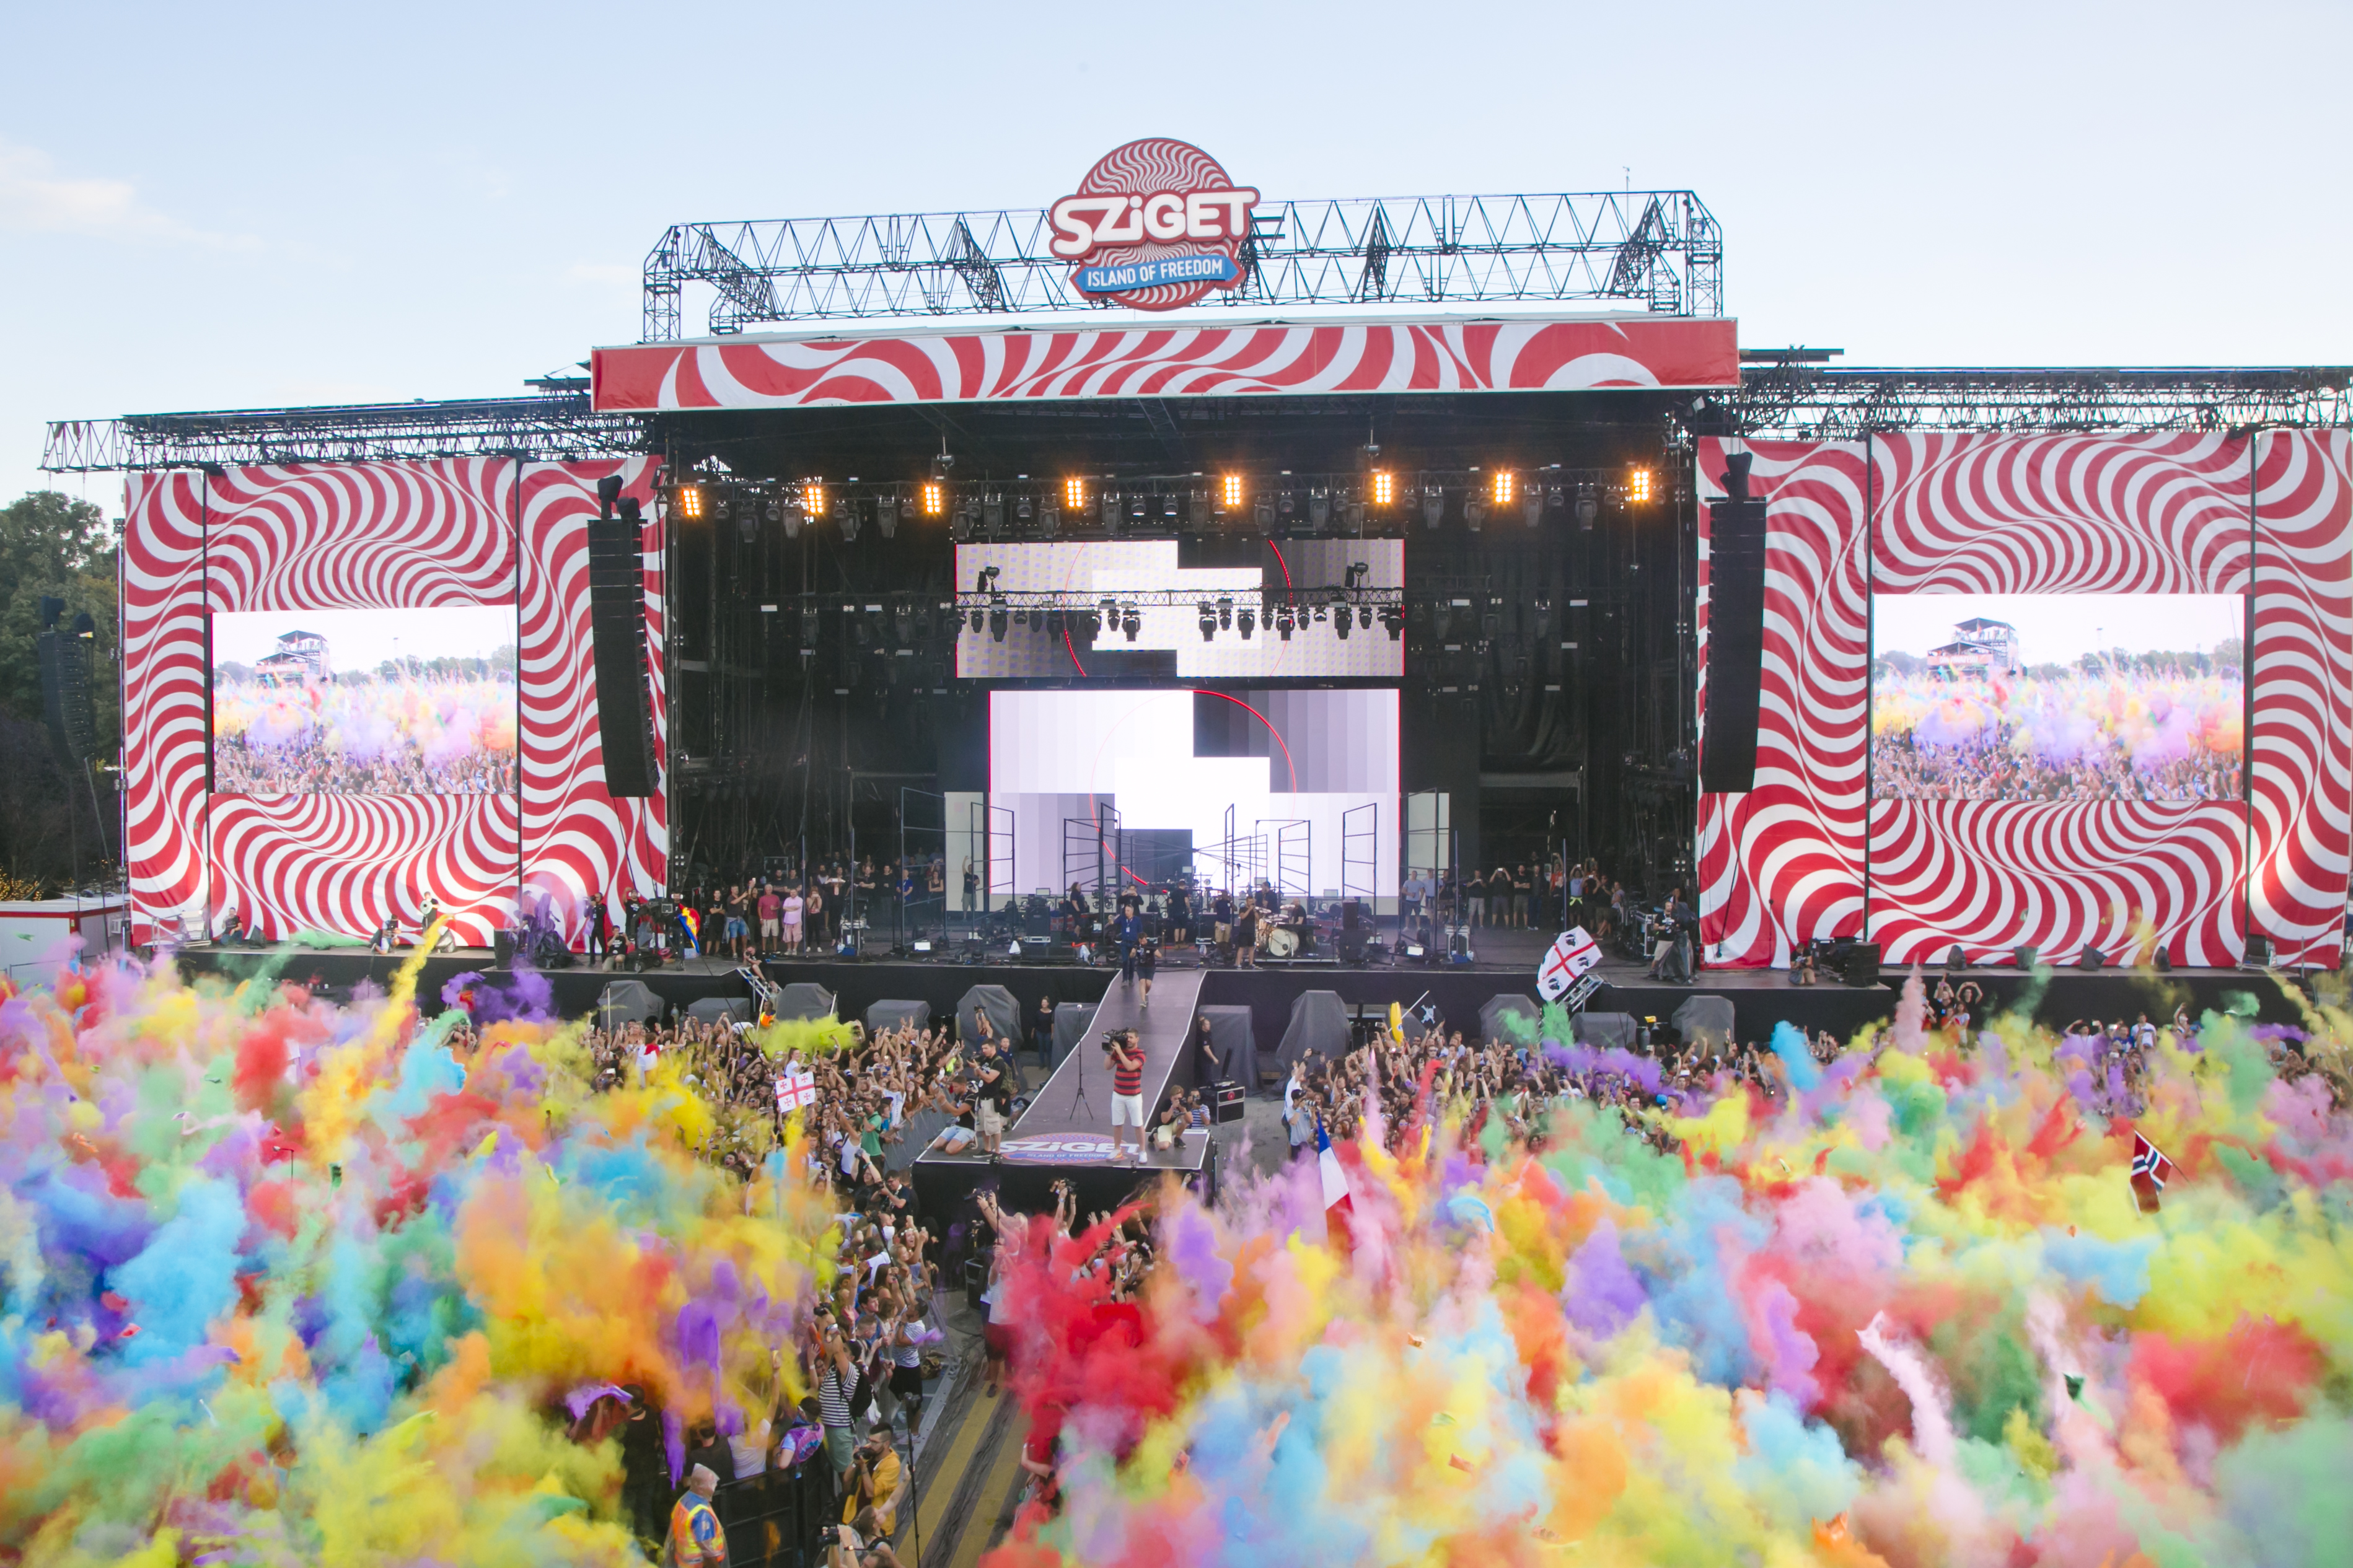 Crowd & Atmosphere at Sziget Festival, Budapest, Hungary - 13 August 2016